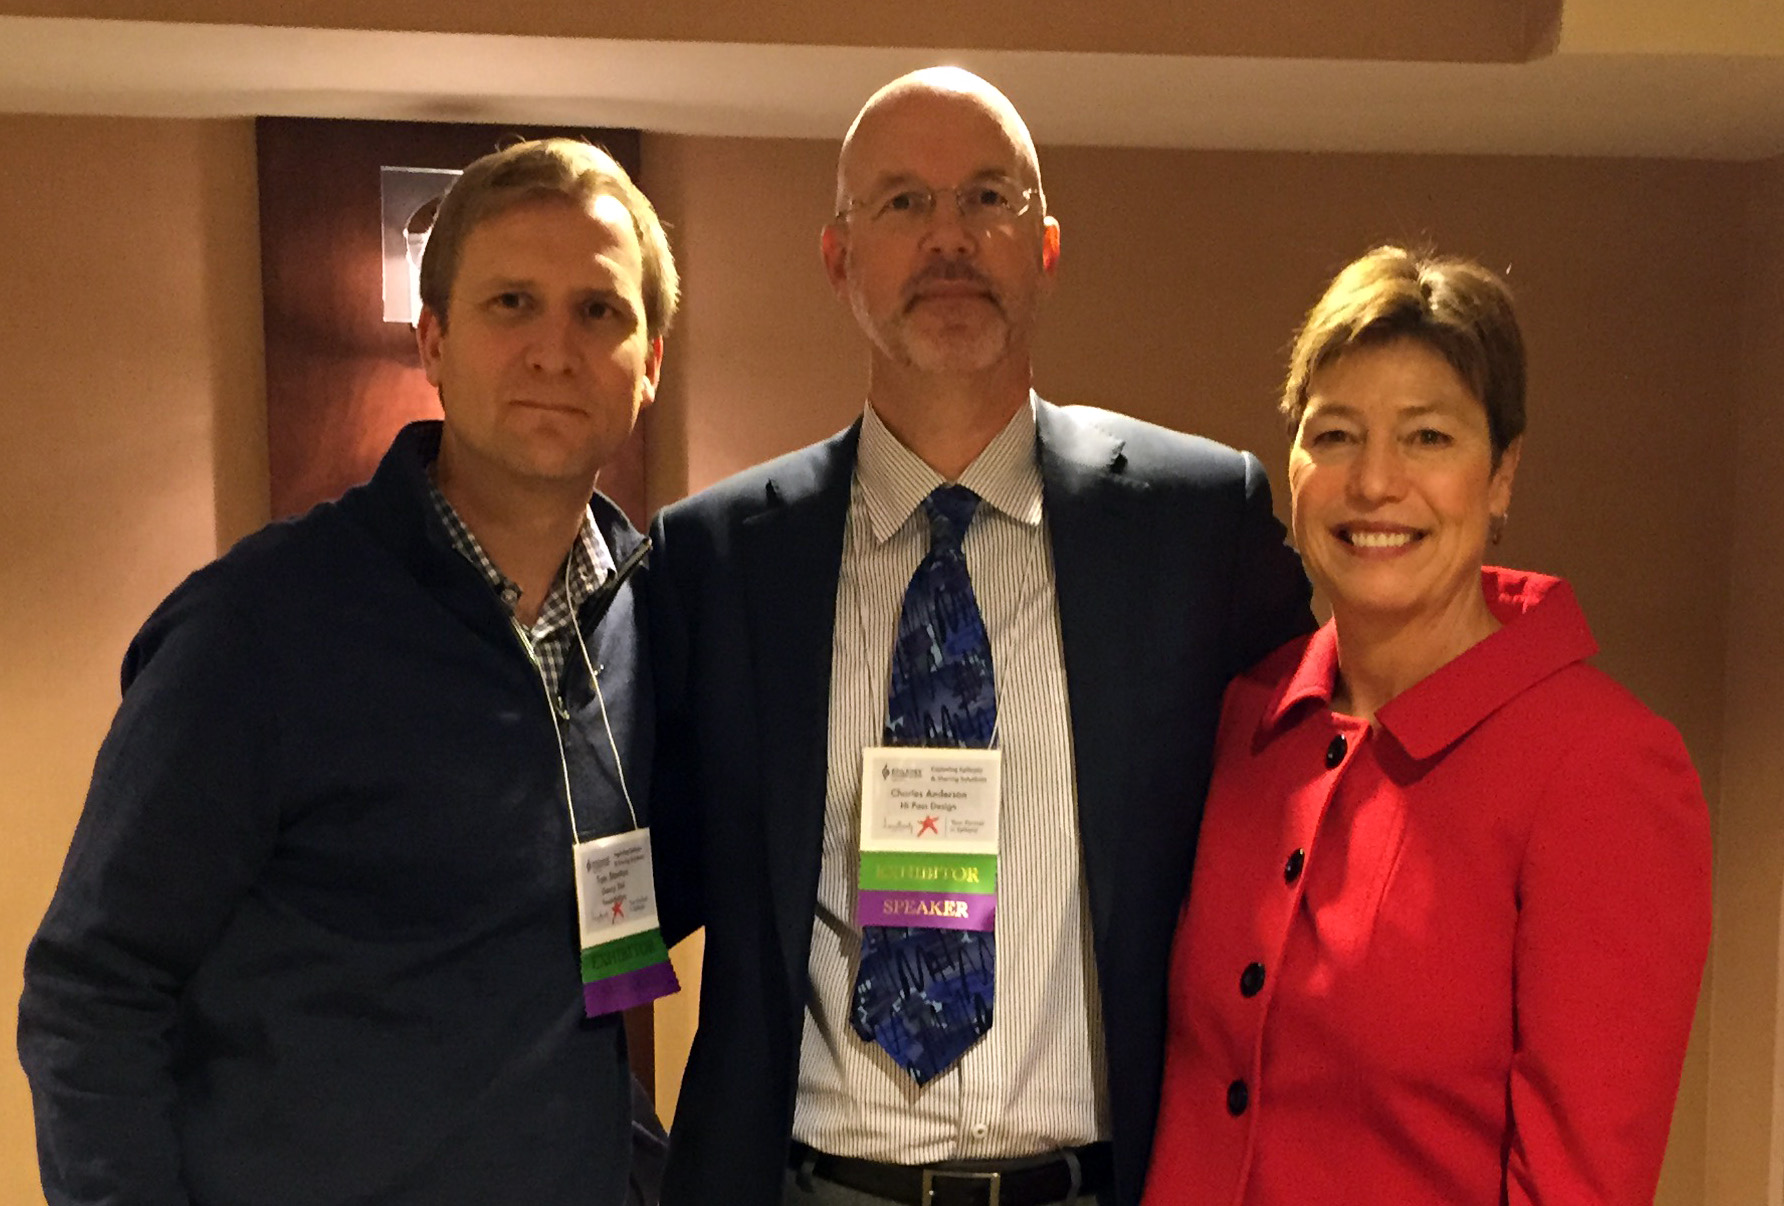 Tom Stanton, Charles Anderson, and Cynthia Anderson